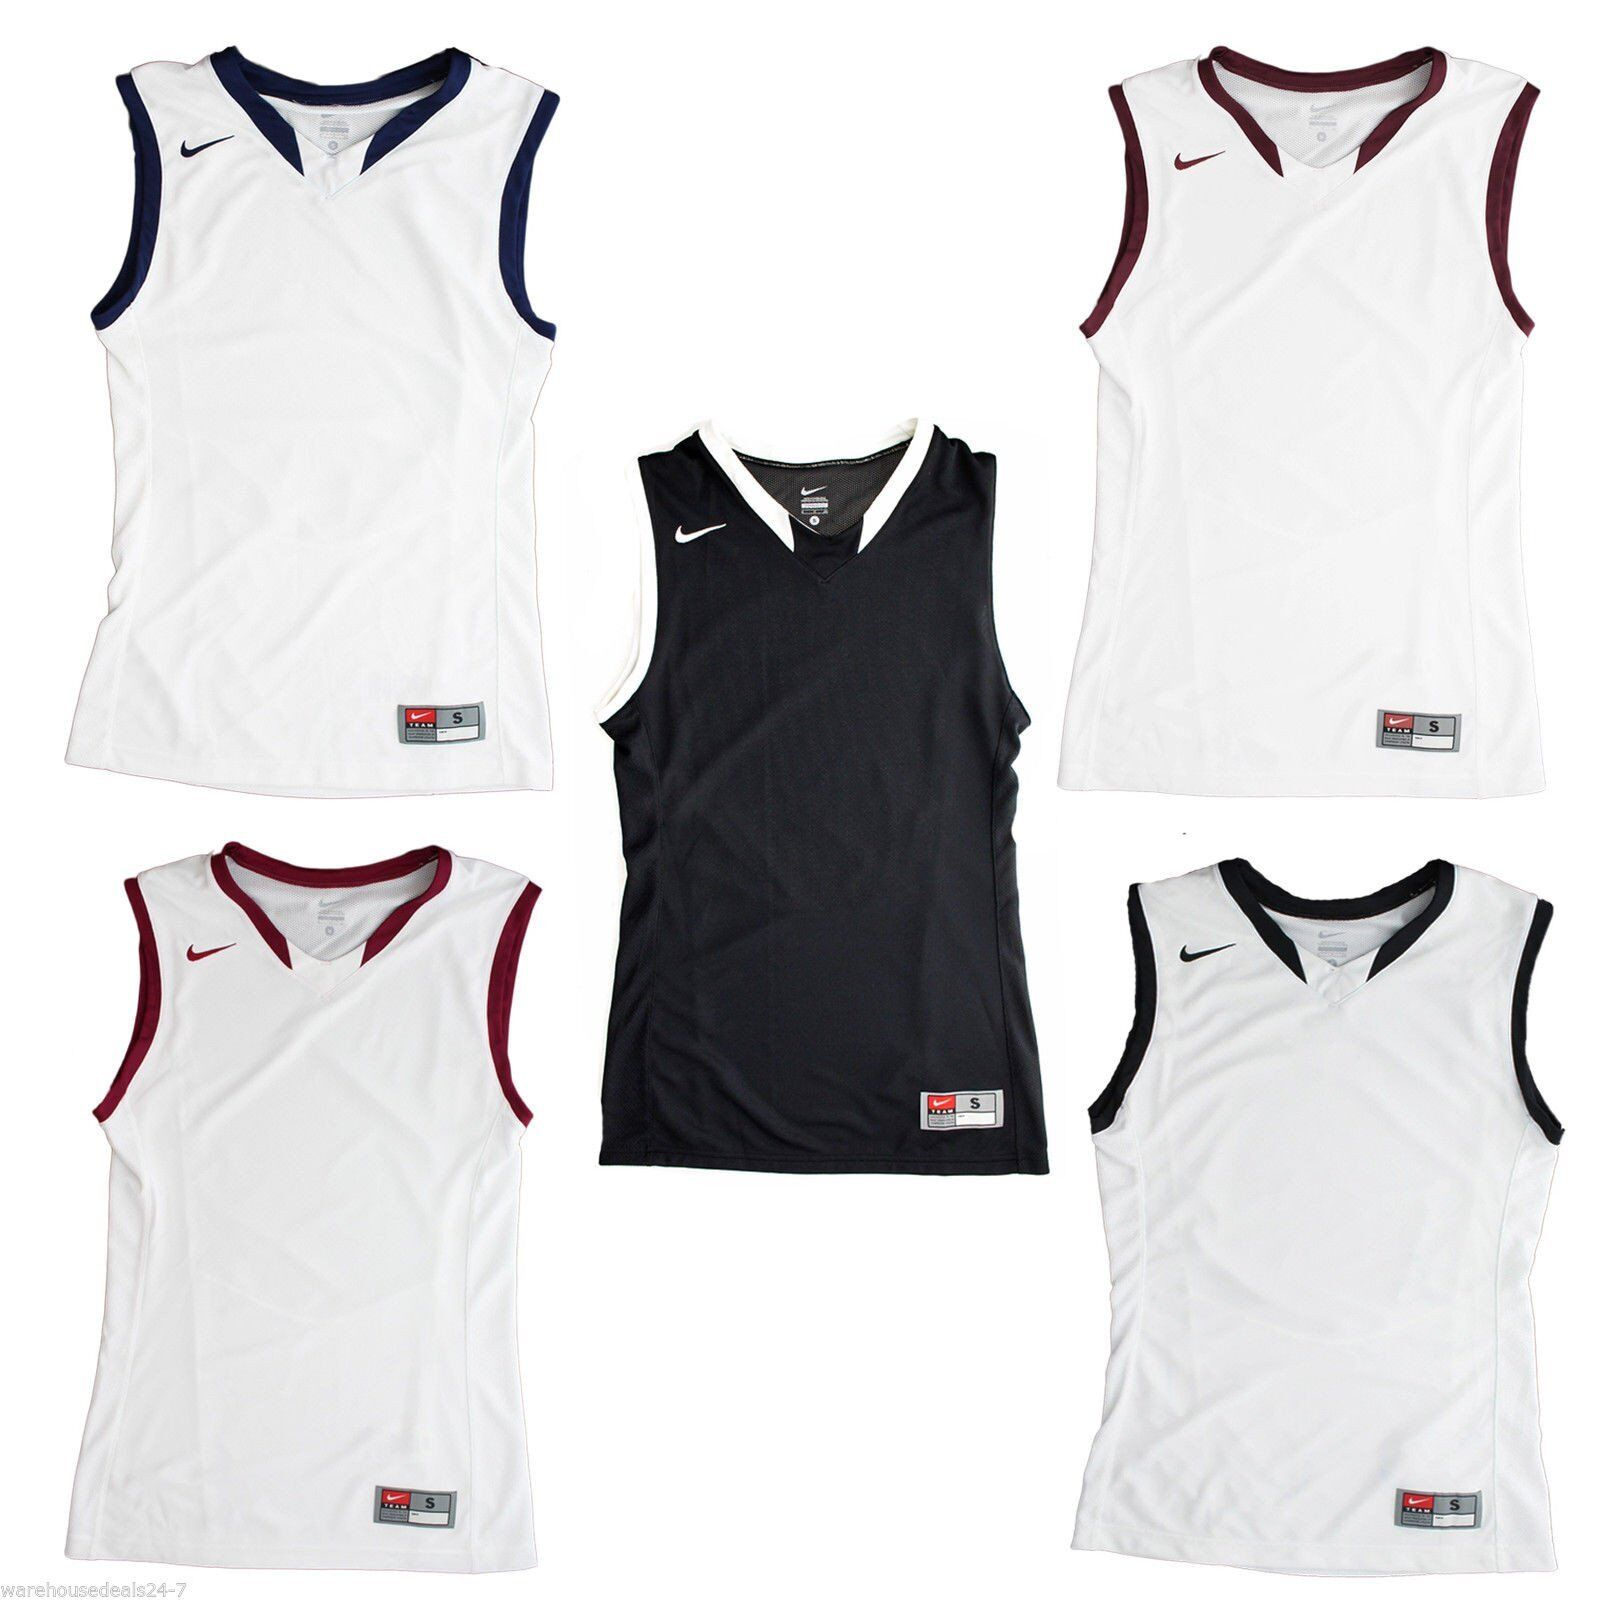 Nike Men's Team Enferno Basketball Jersey Sleeveless Tank Sh